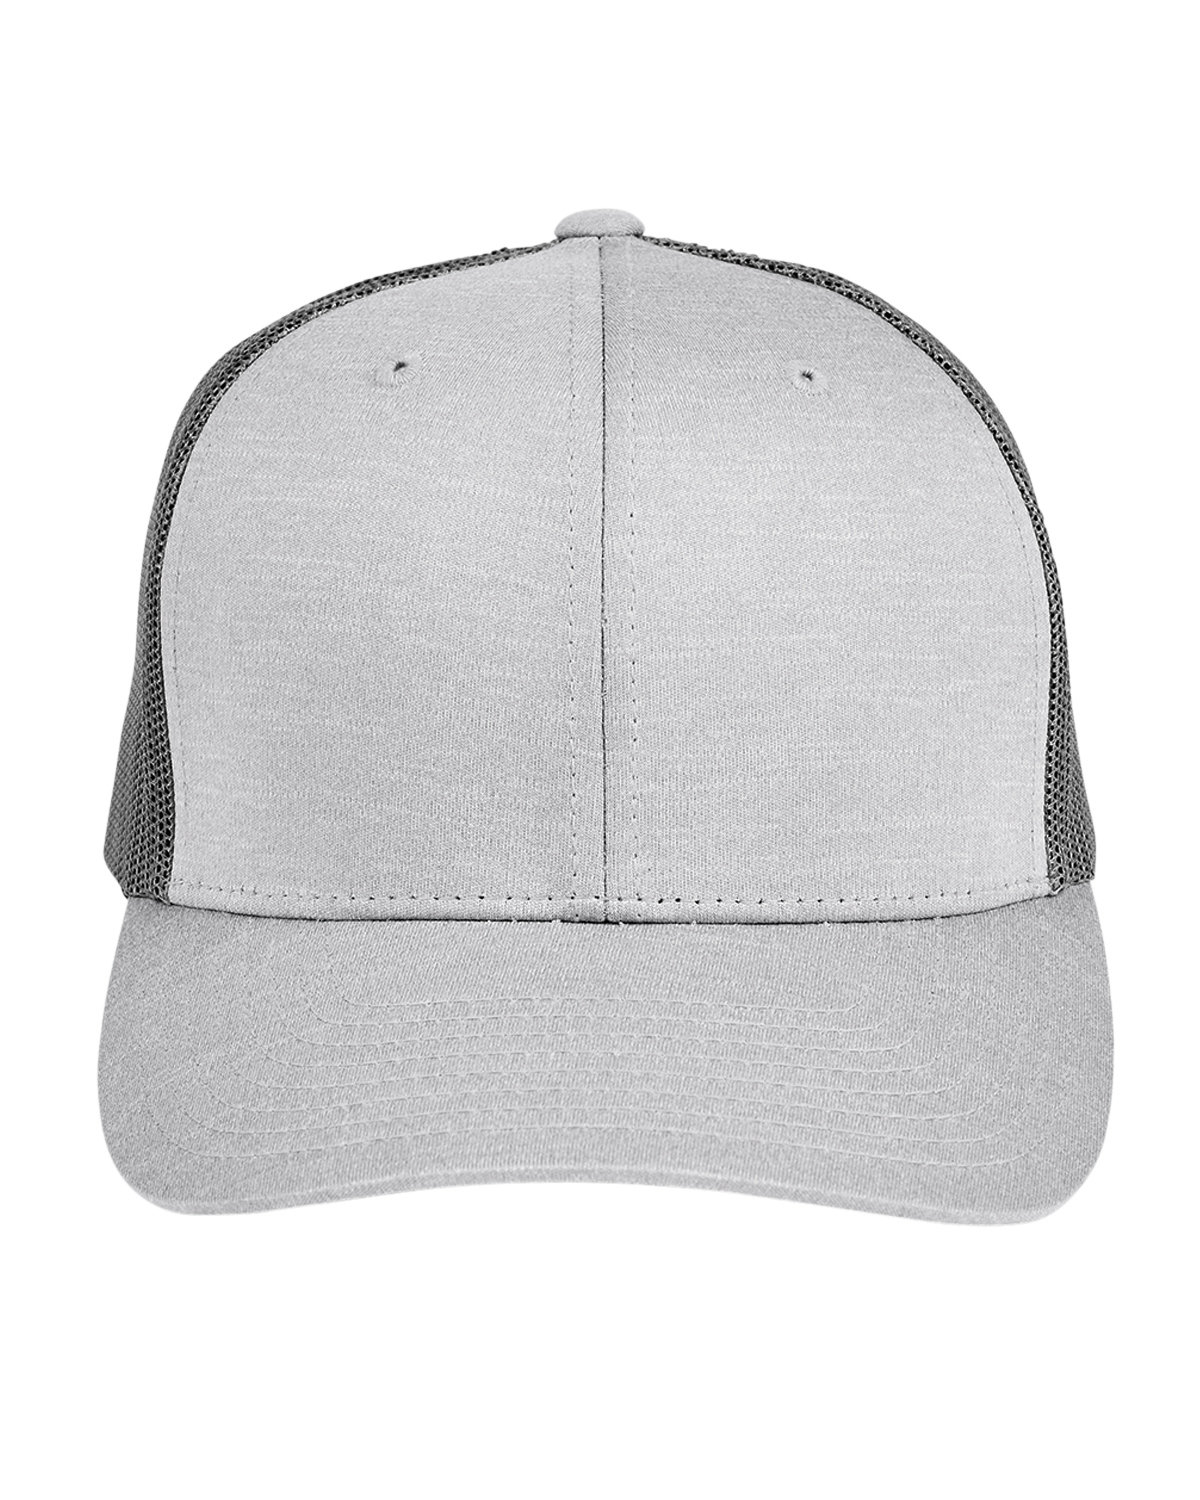 Team 365 by Yupoong® Adult Zone Sonic Heather Trucker Cap ATH HTHR/ SP GRP